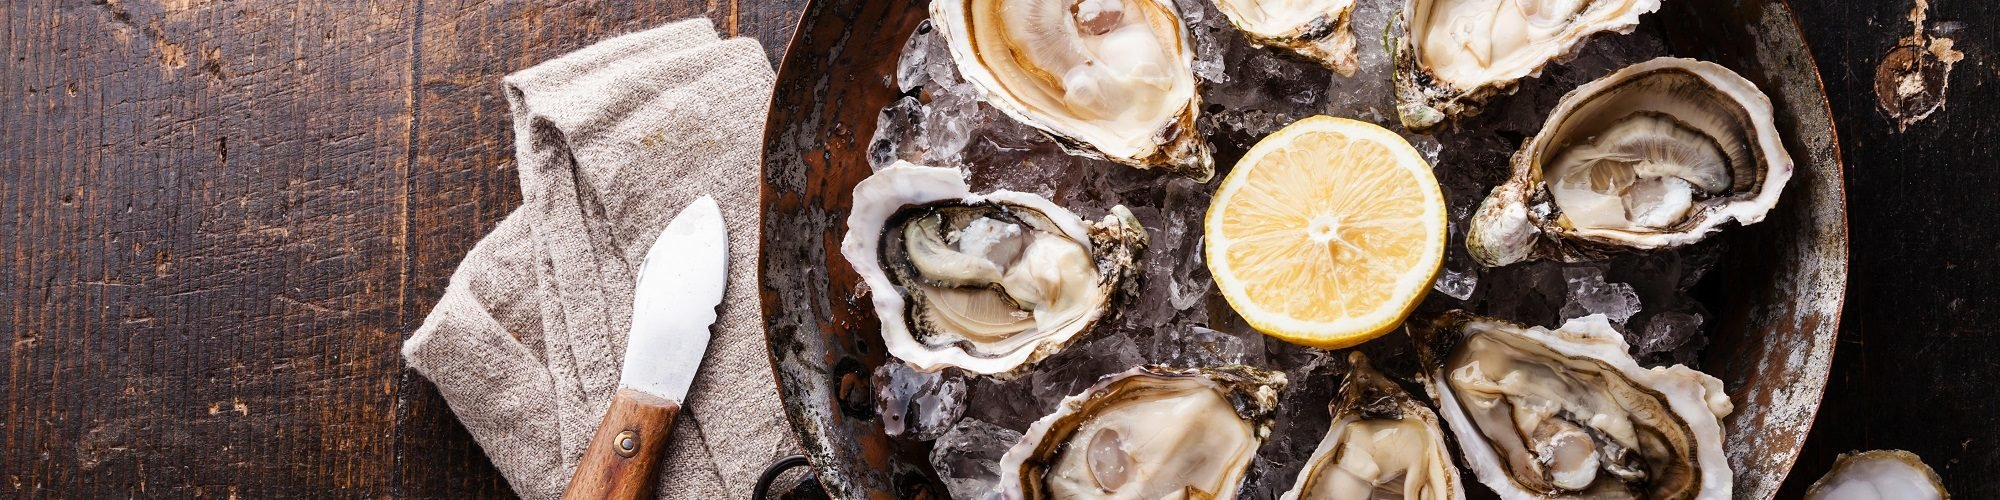 oysters on the half shell on a bed of ice for national oyster day